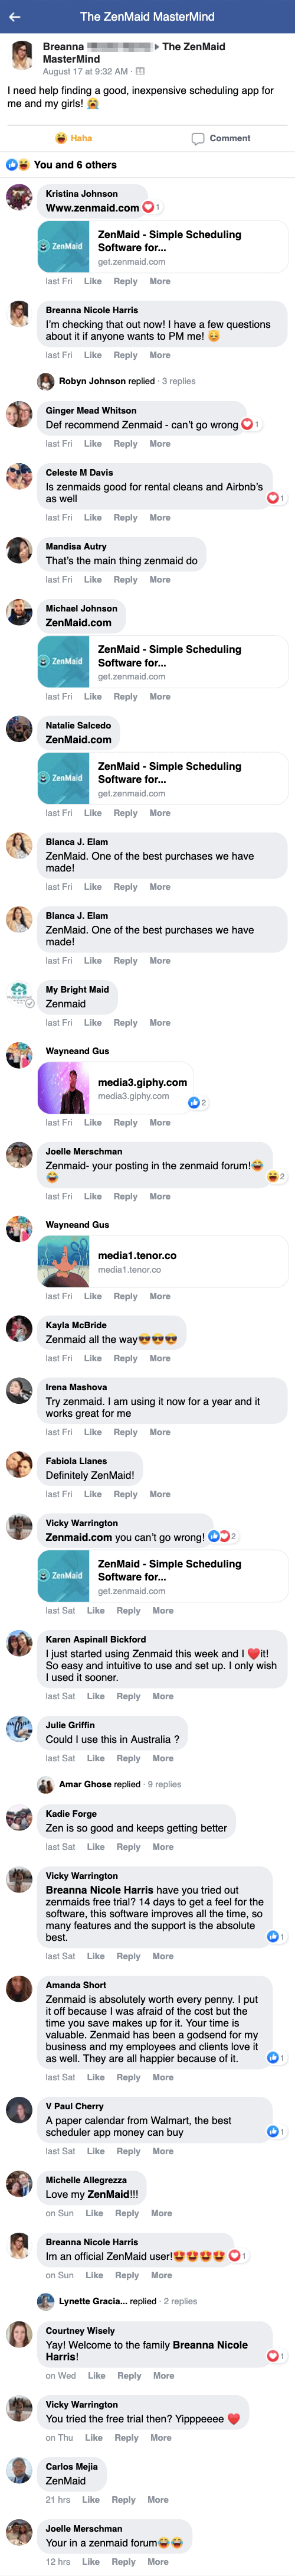 A thread in ZenMaid's Facebook group from someone asking to recommend a scheduling software.